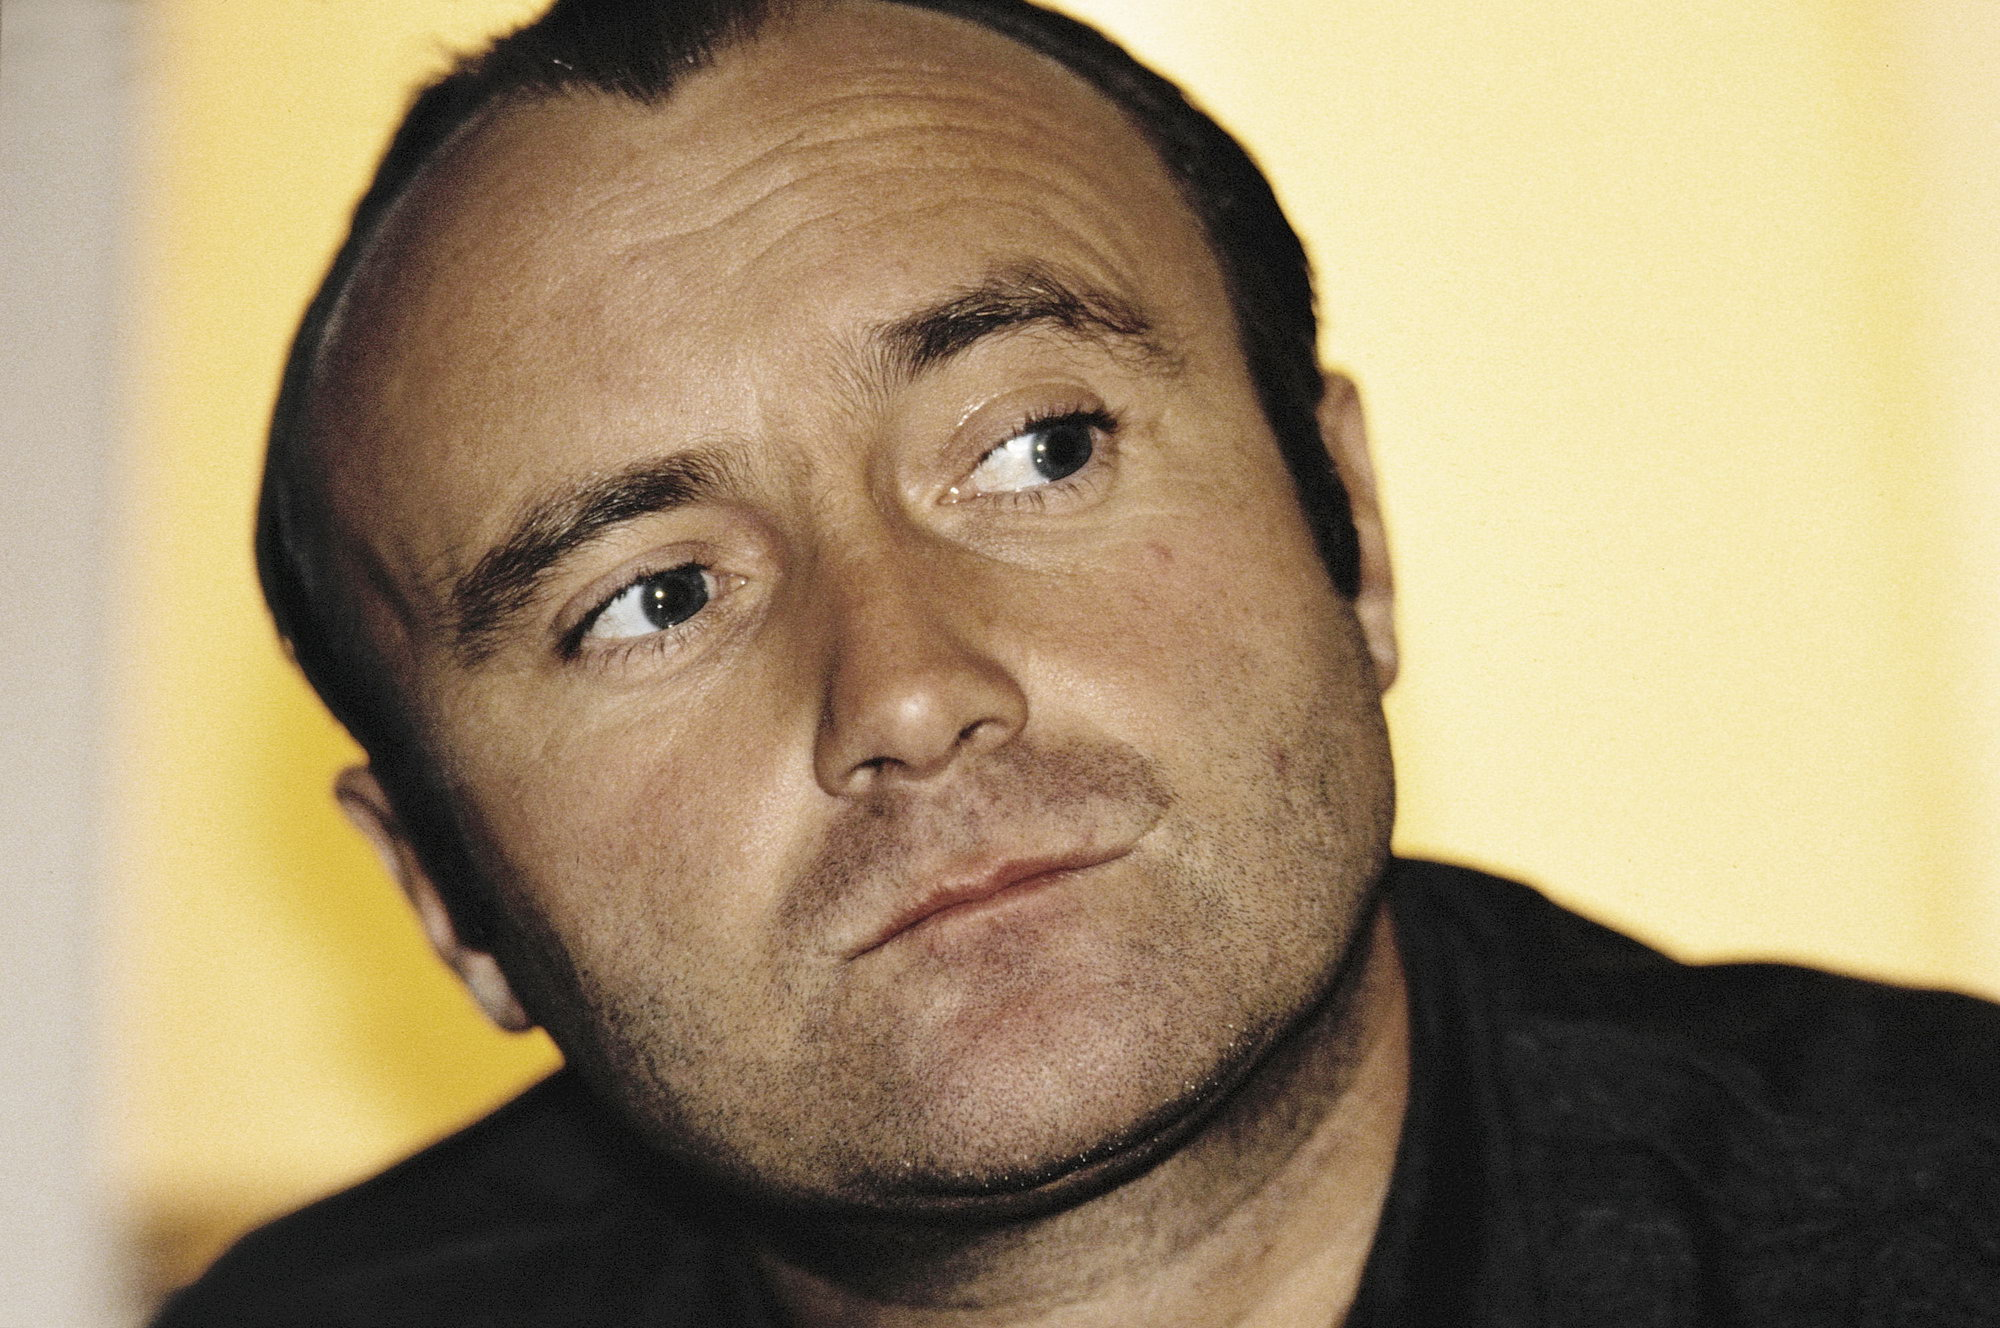 phil collins i don't care anymorephil collins - in the air tonight, phil collins in the air tonight скачать, phil collins in the air tonight перевод, phil collins mp3, phil collins слушать, phil collins paradise, phil collins i don't care anymore, phil collins i can't dance, phil collins against all odds, phil collins mama, phil collins you'll be in my heart, phil collins one more night, phil collins songs, phil collins in the air tonight lyrics, phil collins true colors, phil collins песни, phil collins sussudio, phil collins face value, phil collins in the air, phil collins easy lover